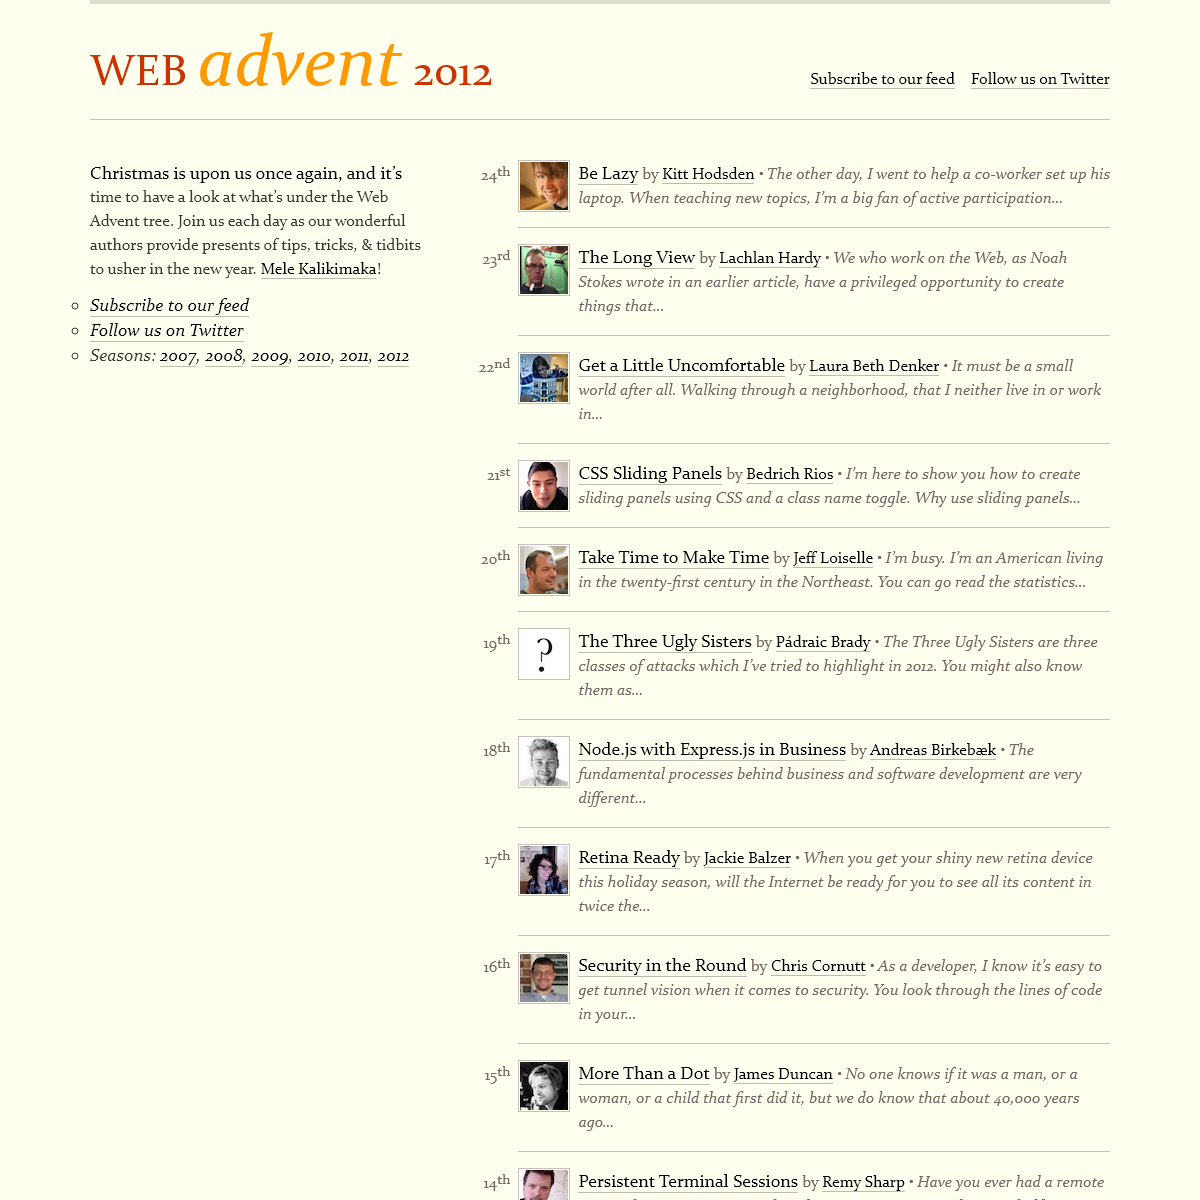 Web Advent 2012